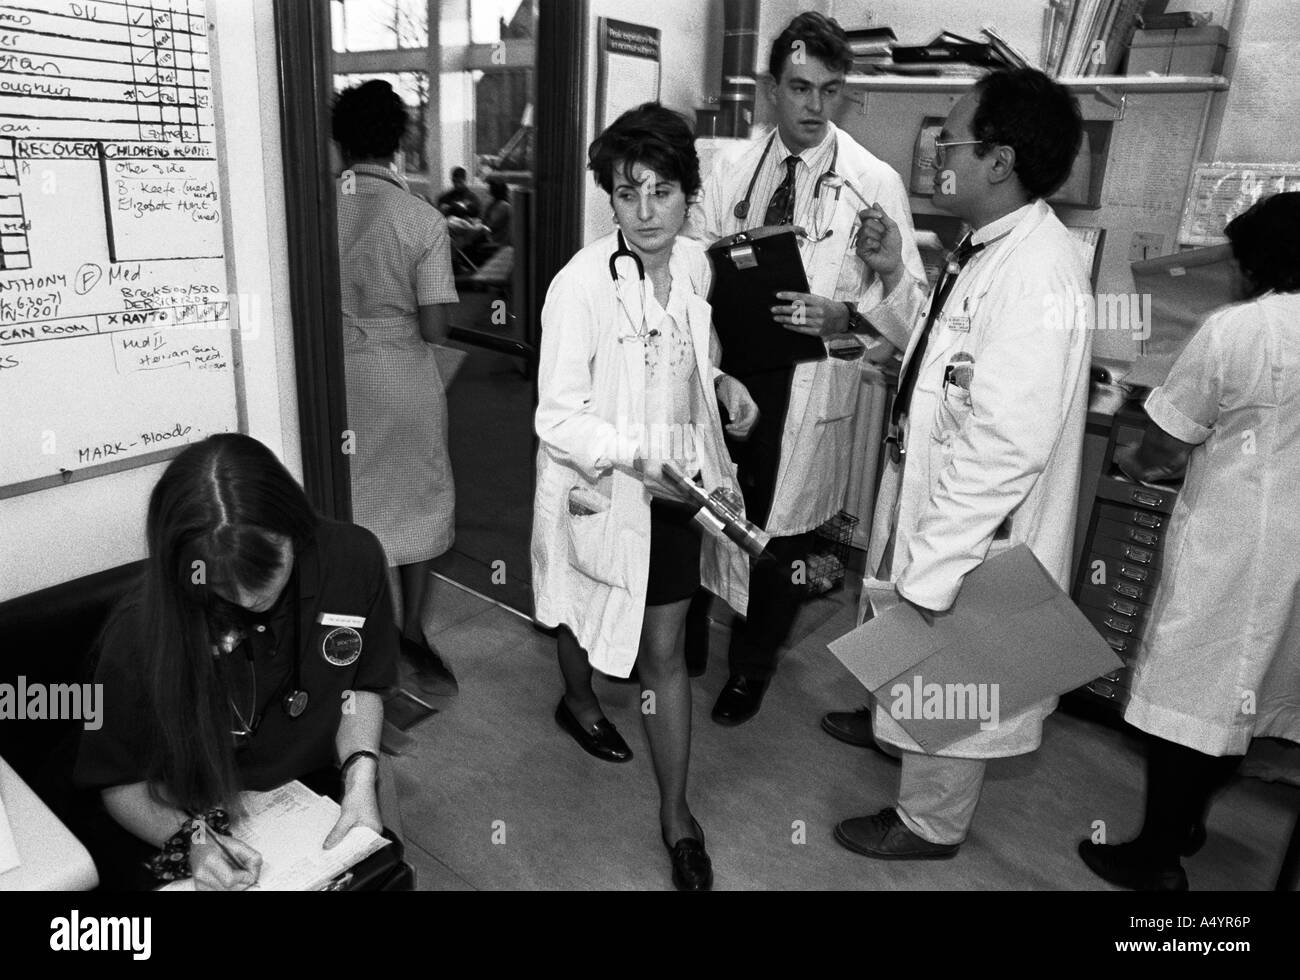 Busy doctors rushing to treat patients in the A&E Department of Dudley Rd Hospital in Birmingham, UK - Stock Image